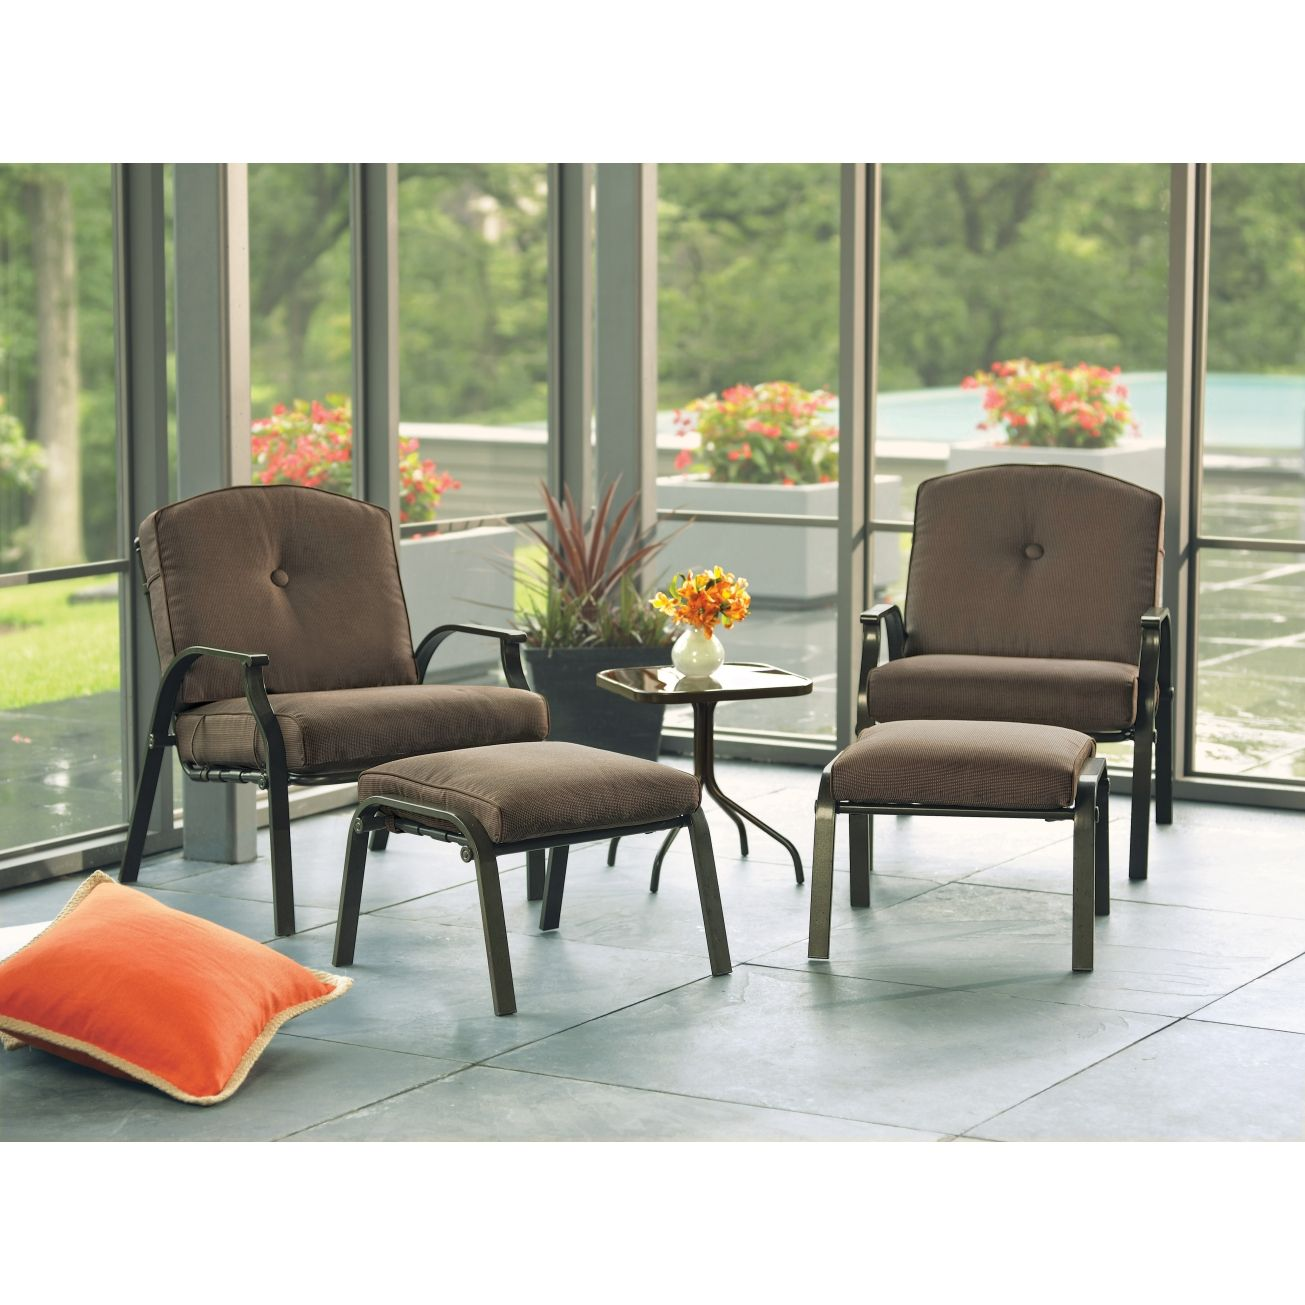 Living Accents 5 Piece Aspen Conversation Set   Patio Collections U0026 Seating  Sets   Ace Hardware